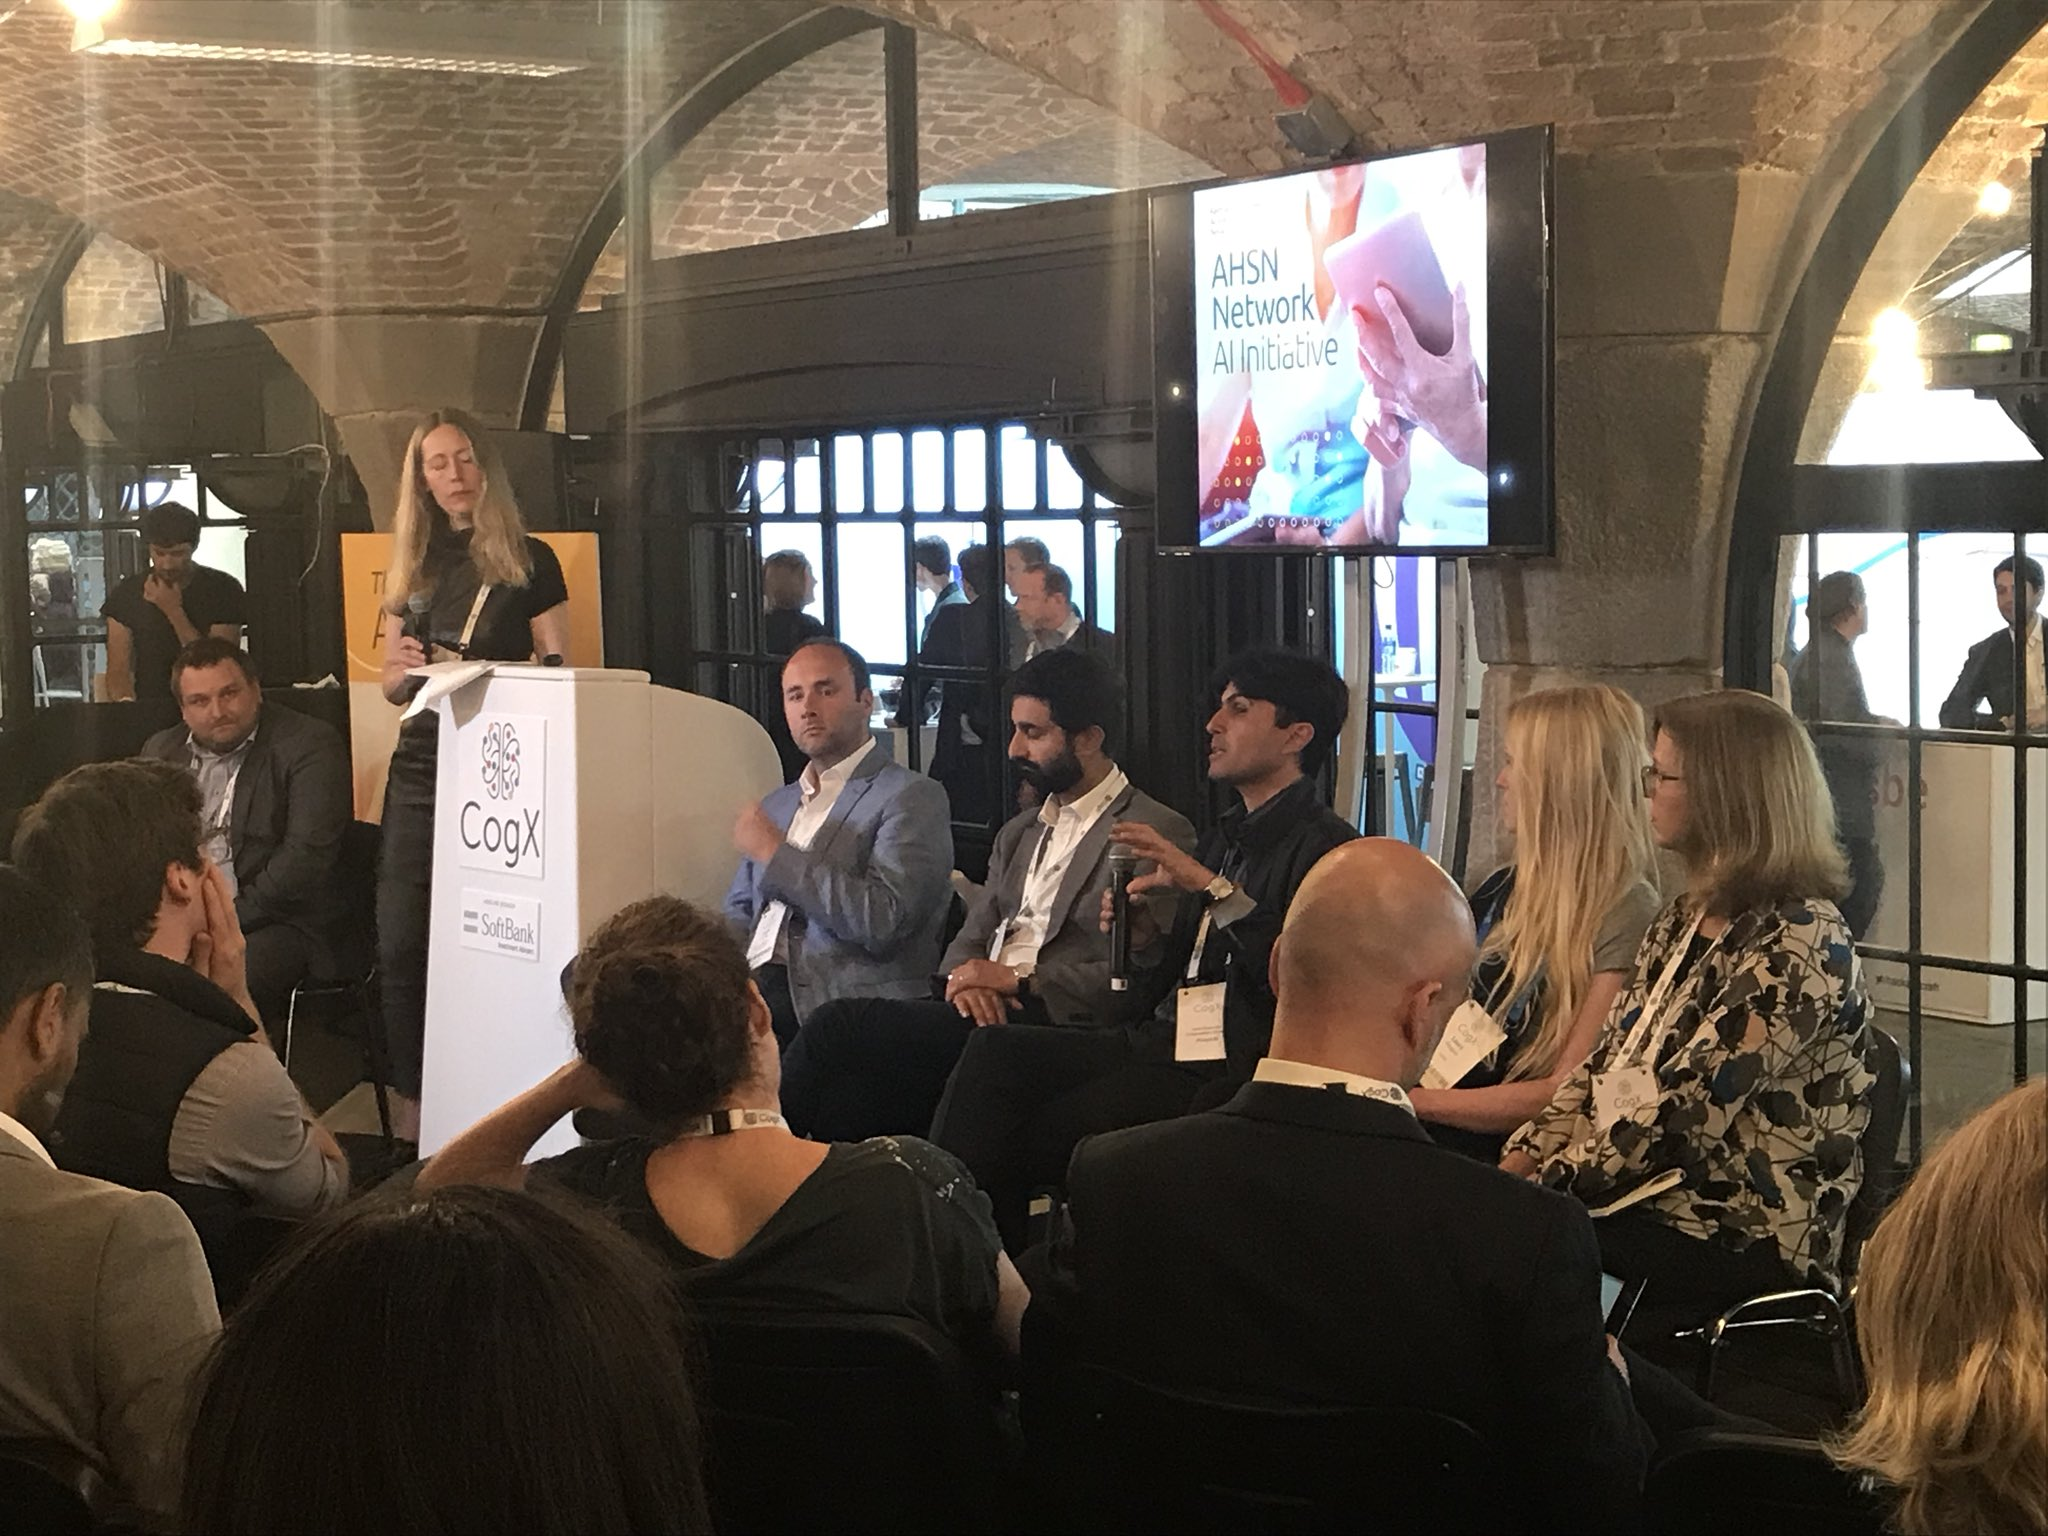 MOVING THE HYPE OF AI TO REAL WORLD IMPACT IN HEALTH    CogX AI Festival 10 & 11 June 2018       Chair:  Tina Woods , CEO, Collier Health  Panellists:   Dr Hugh Harvey  (Clinical Director, Kheiron Medical; Topol Review Member and Co-Chair, Expert Advisory Panel – Artificial Intelligence)   Dr Payam Barnaghi  (Co-Principal Investigator, Technology Integrated Health Management (TIHM), IoT Testbed Project, KSS AHSN)   Harpreet Sood , Associate Chief Clinical Information Officer, NHS England   Melissa Ream , Adviser, KSS Academic Health Science Network, National AHSN AI Initiative   Laura Douglas , Co-founder & CEO, Levels  Click   here   for article.